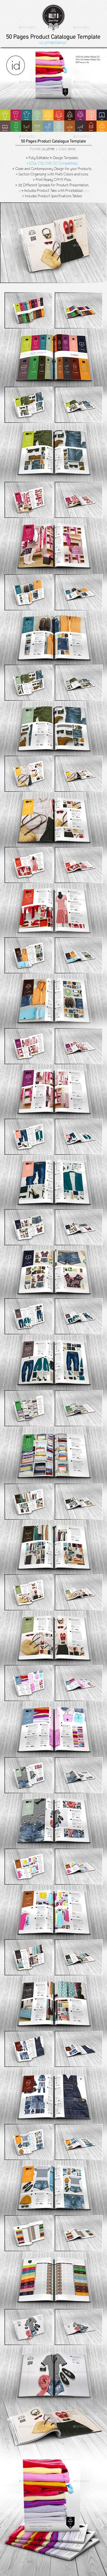 Fine 10 Best Resume Designs Huge 100 Free Resume Builder And Download Rectangular 100 Template 18th Birthday Invitations Templates Young 2 Binder Spine Template Pink2 Weeks Notice Template Supermarket Products Catalog Brochure Template | 14, Template And ..